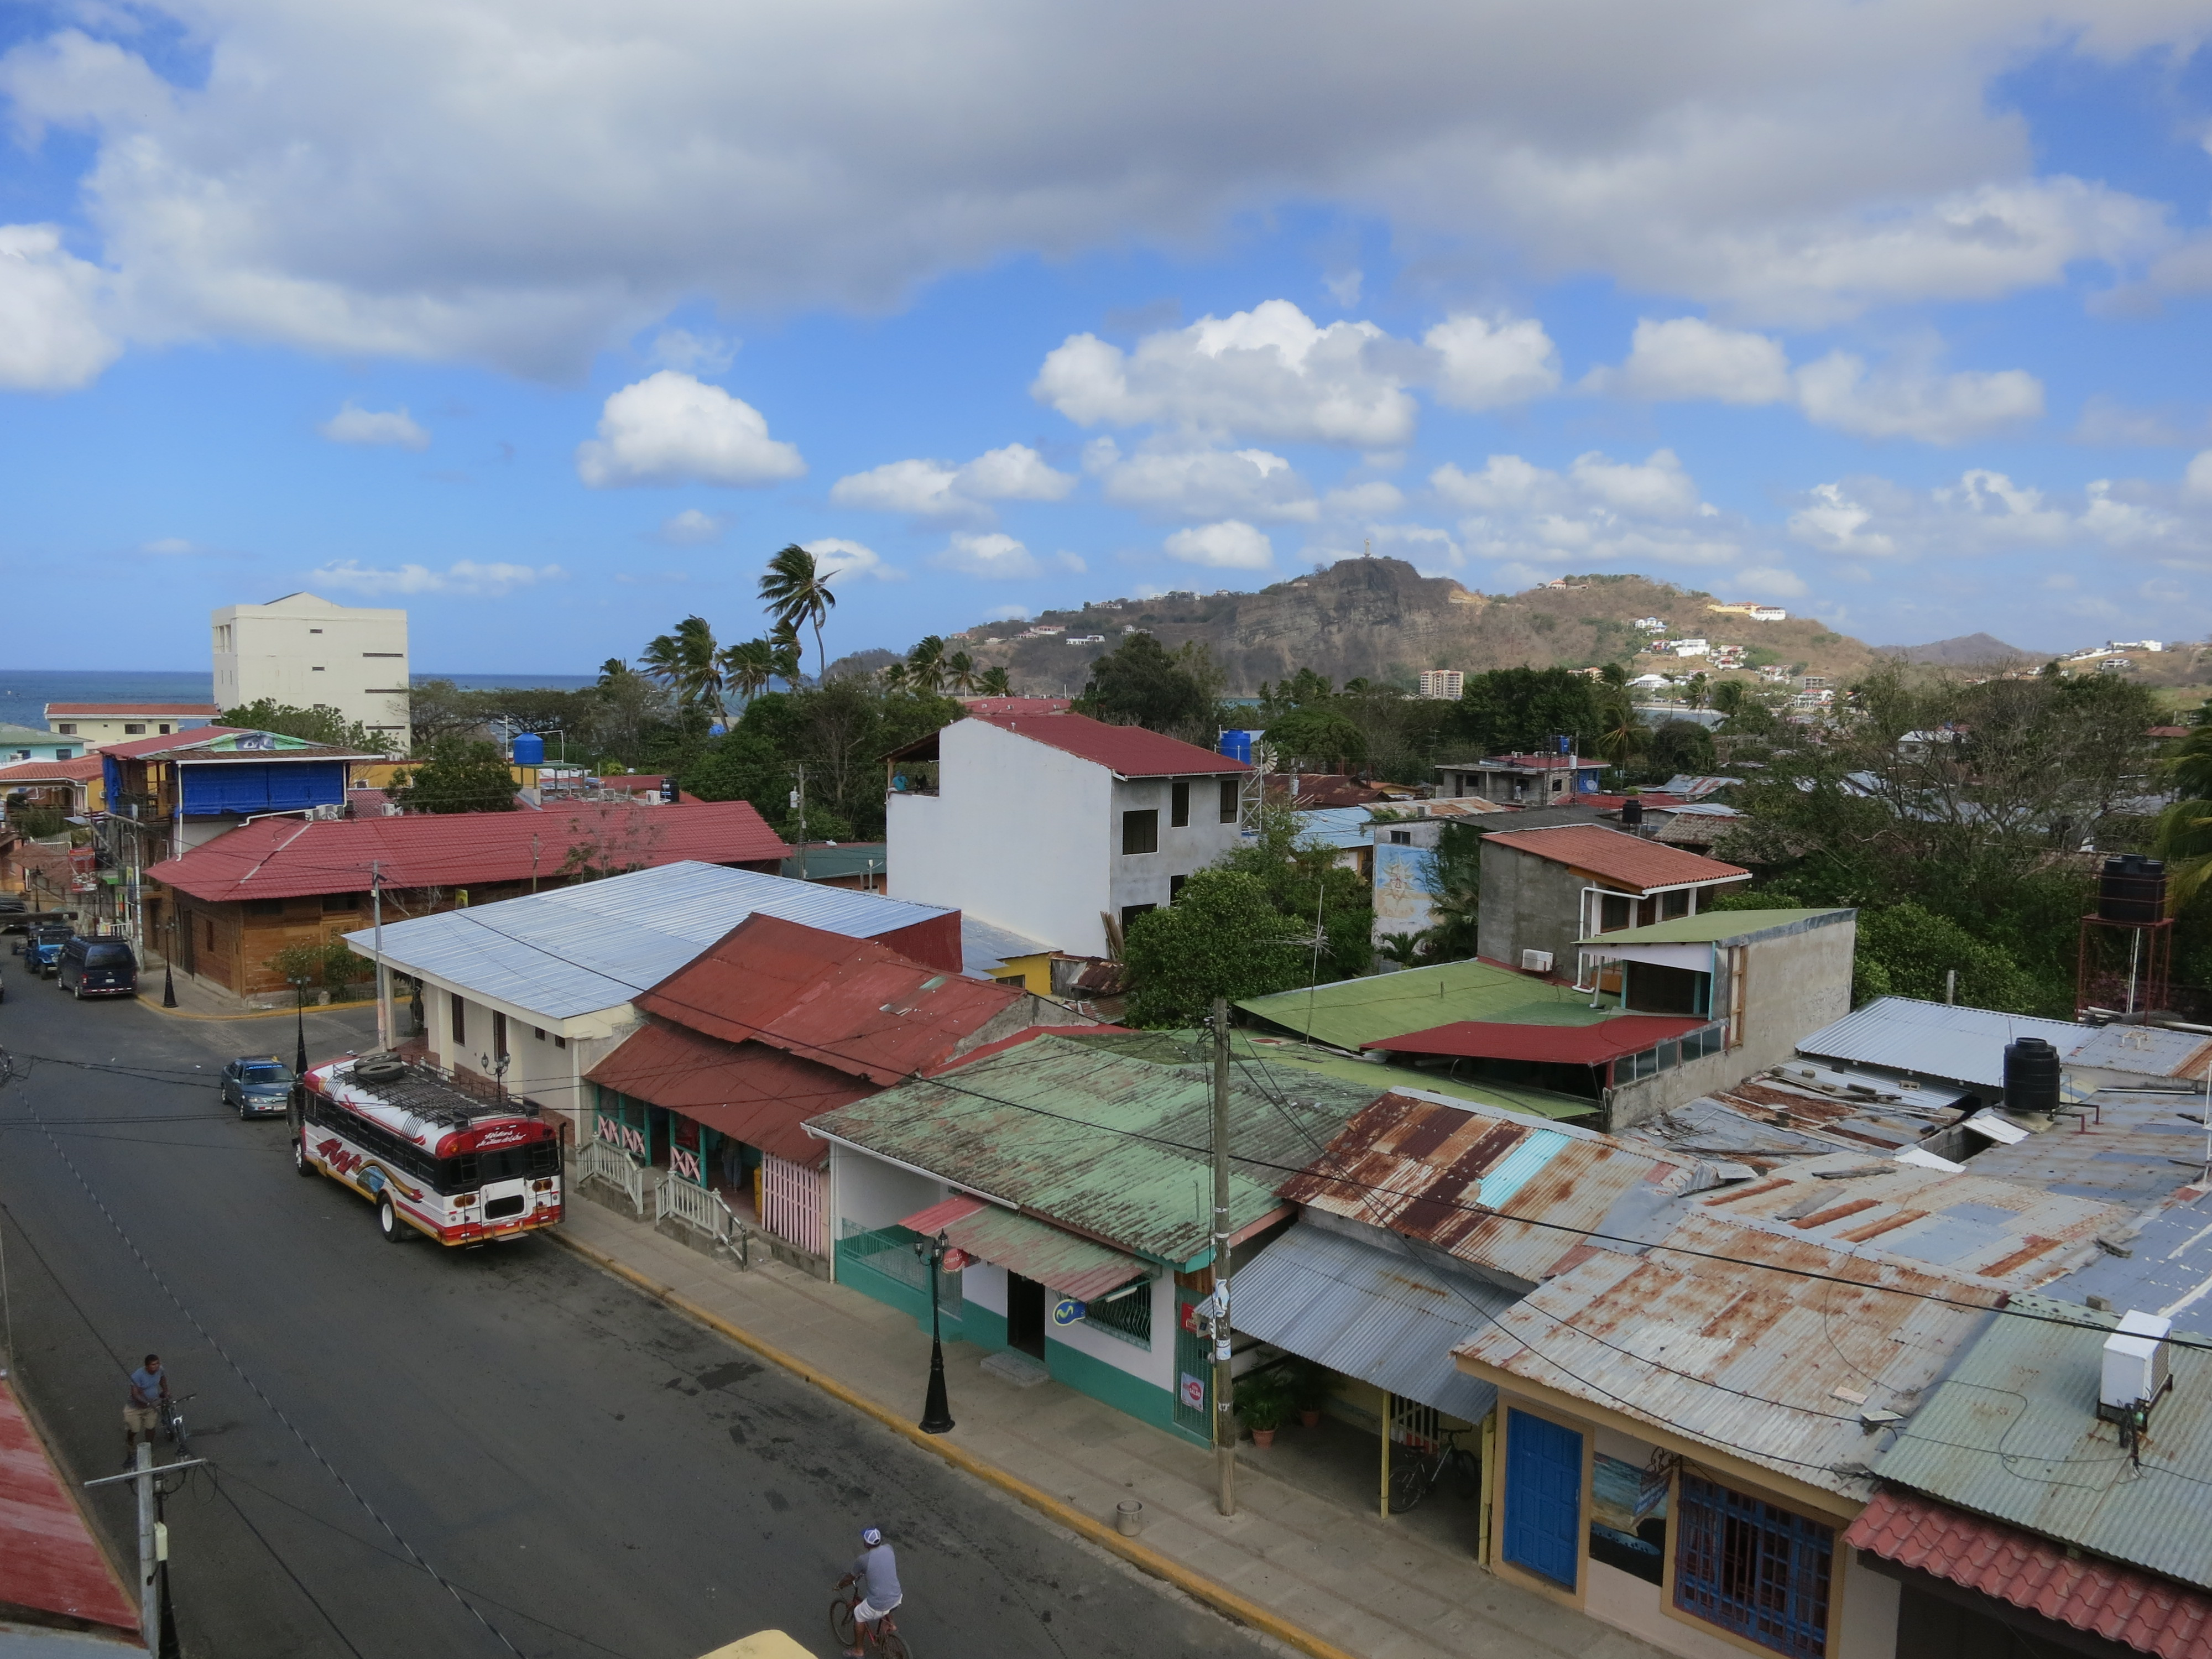 Nicaragua Lodging – Dorms to Guest Houses: A Review